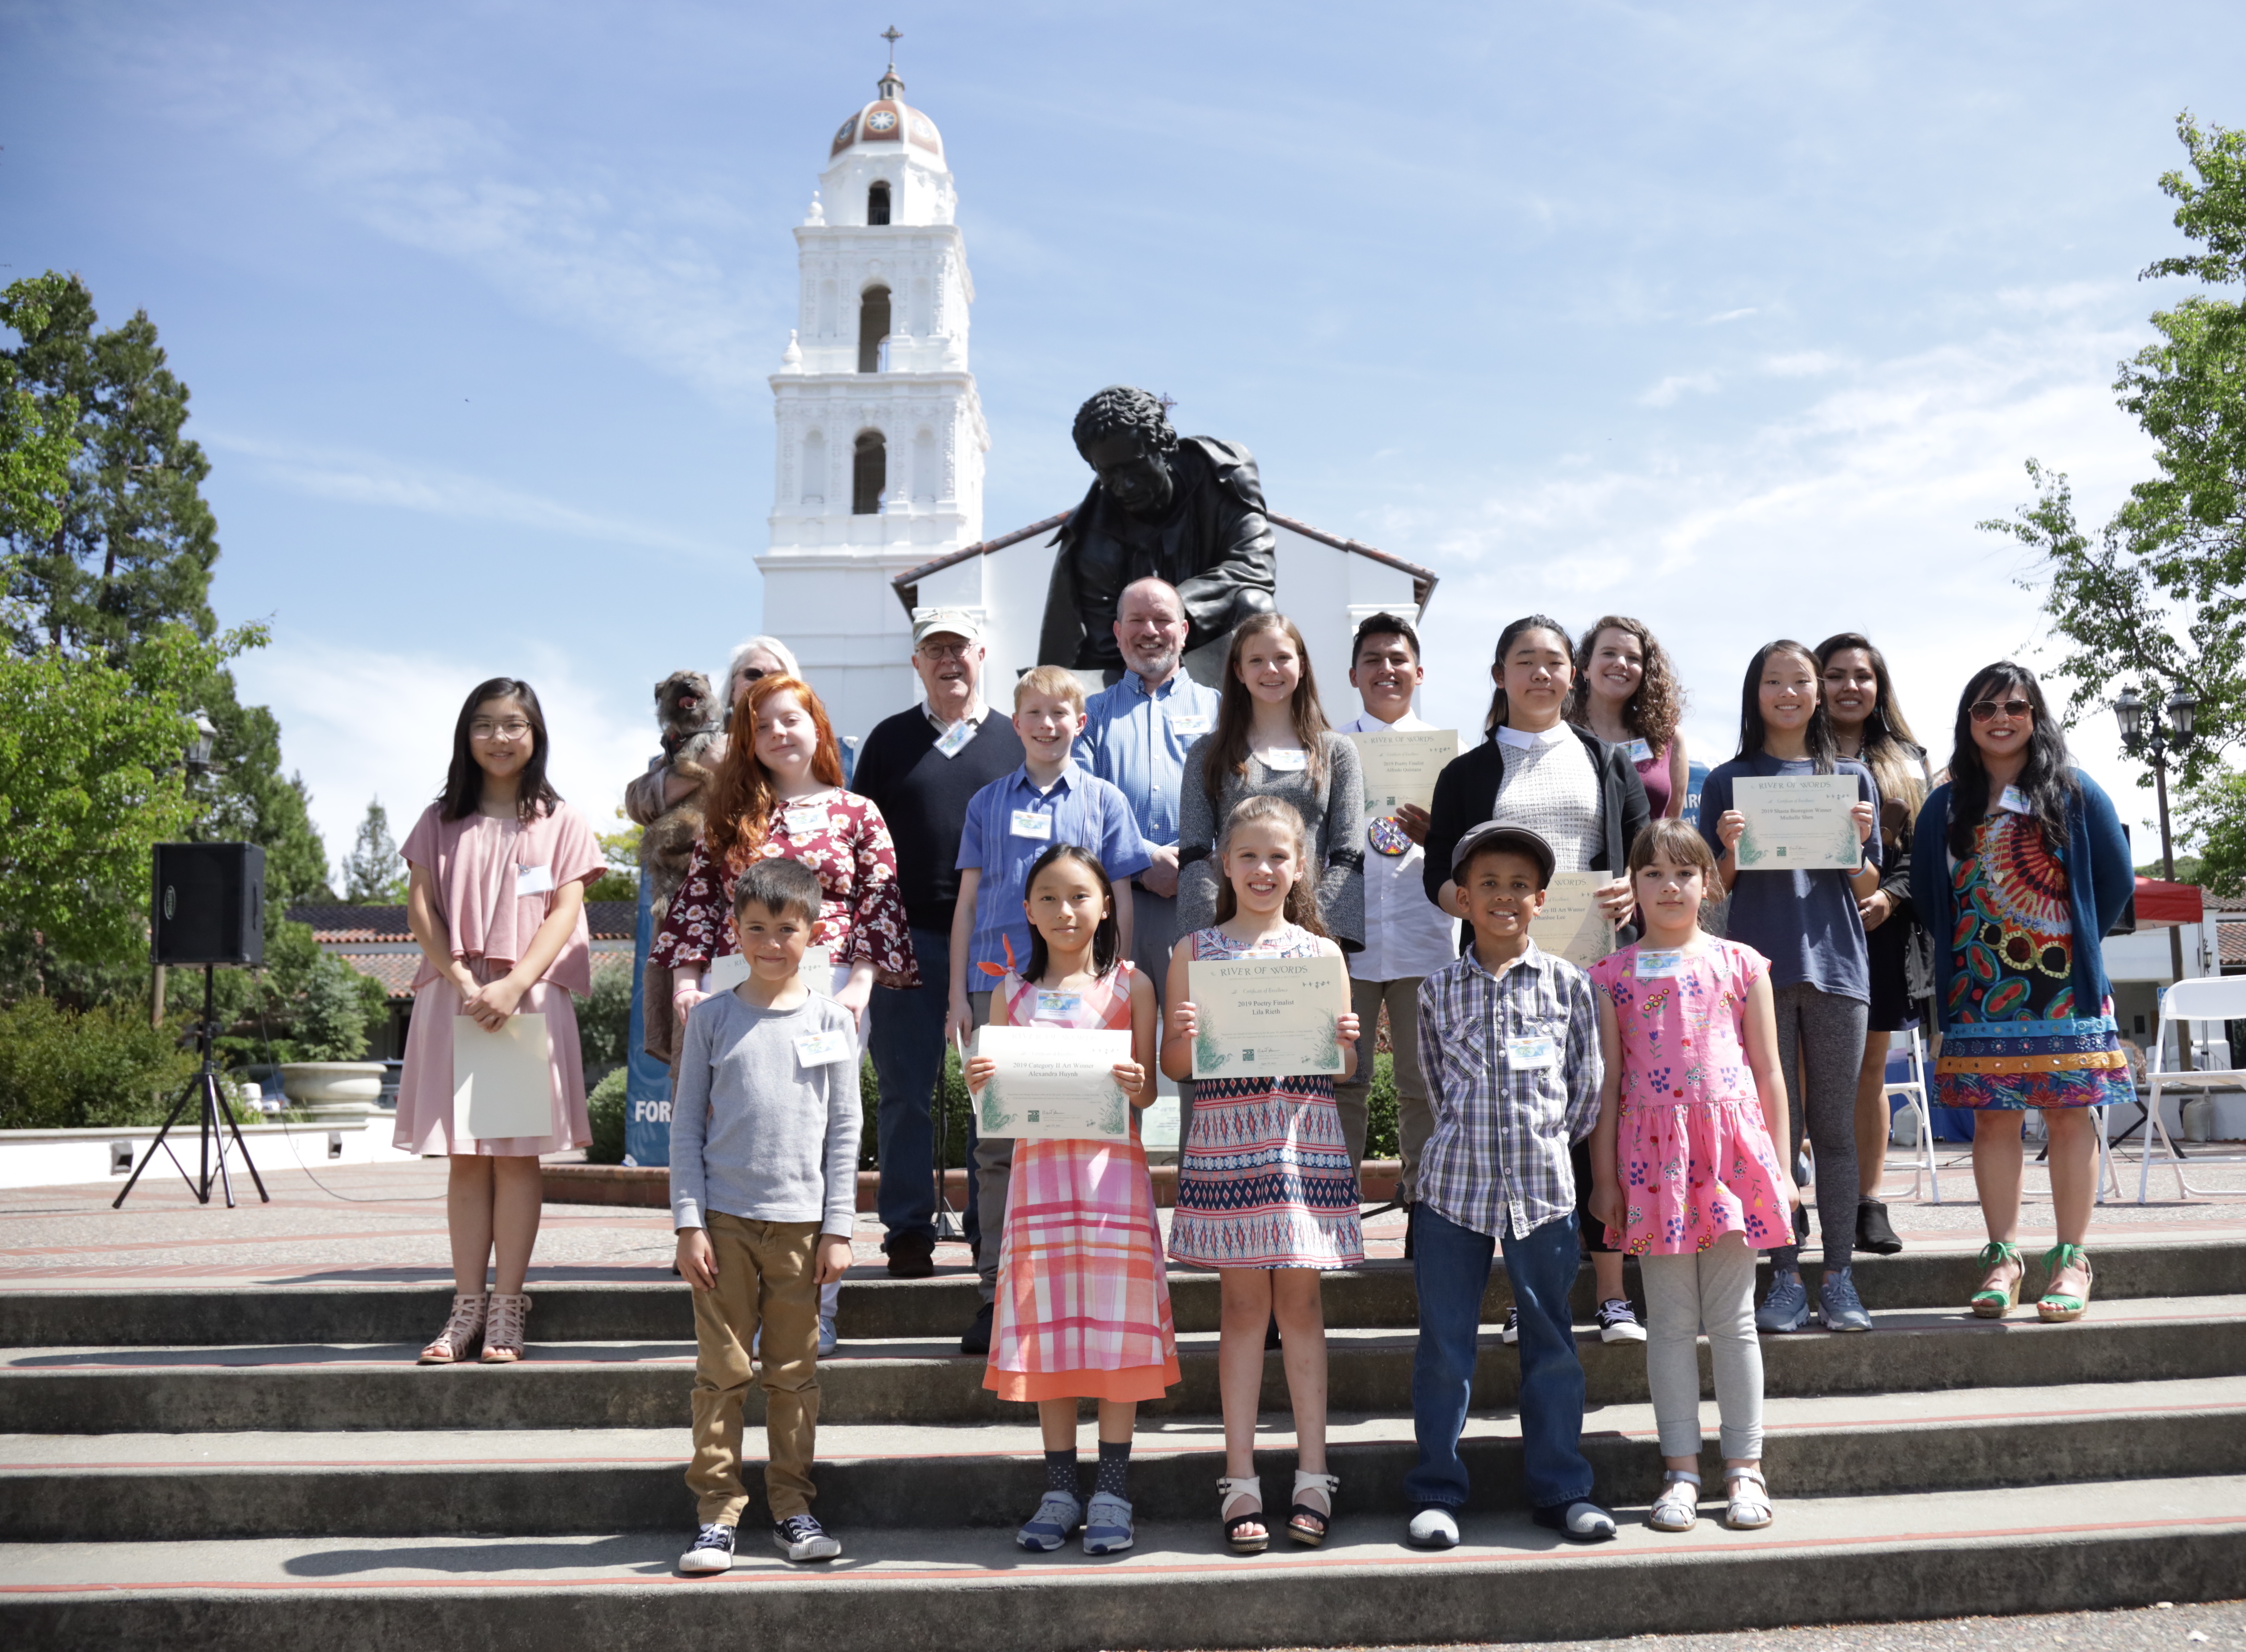 2019 River of Words winners and finalists at the 2019 River of Words Watershed Festival at Saint Mary's College of California's Chapel Lawn: April 13th, 2019. Photography by John Burkart.